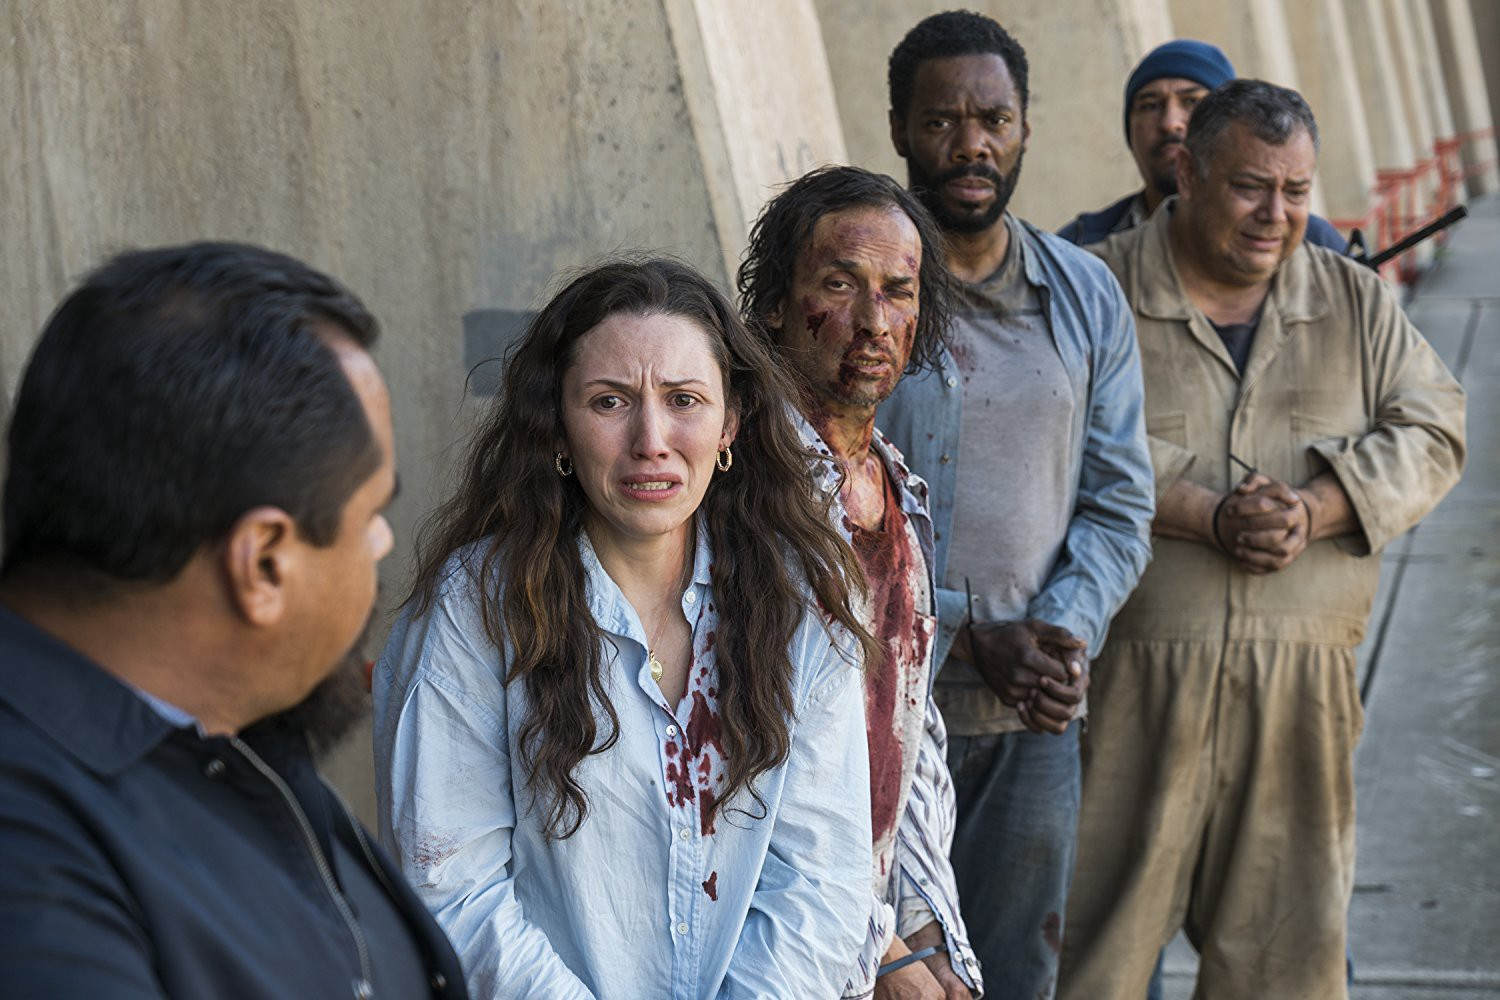 Fear The Walking Dead Bs >> Full Video Online Keeping Up With The Kardashians Fear The